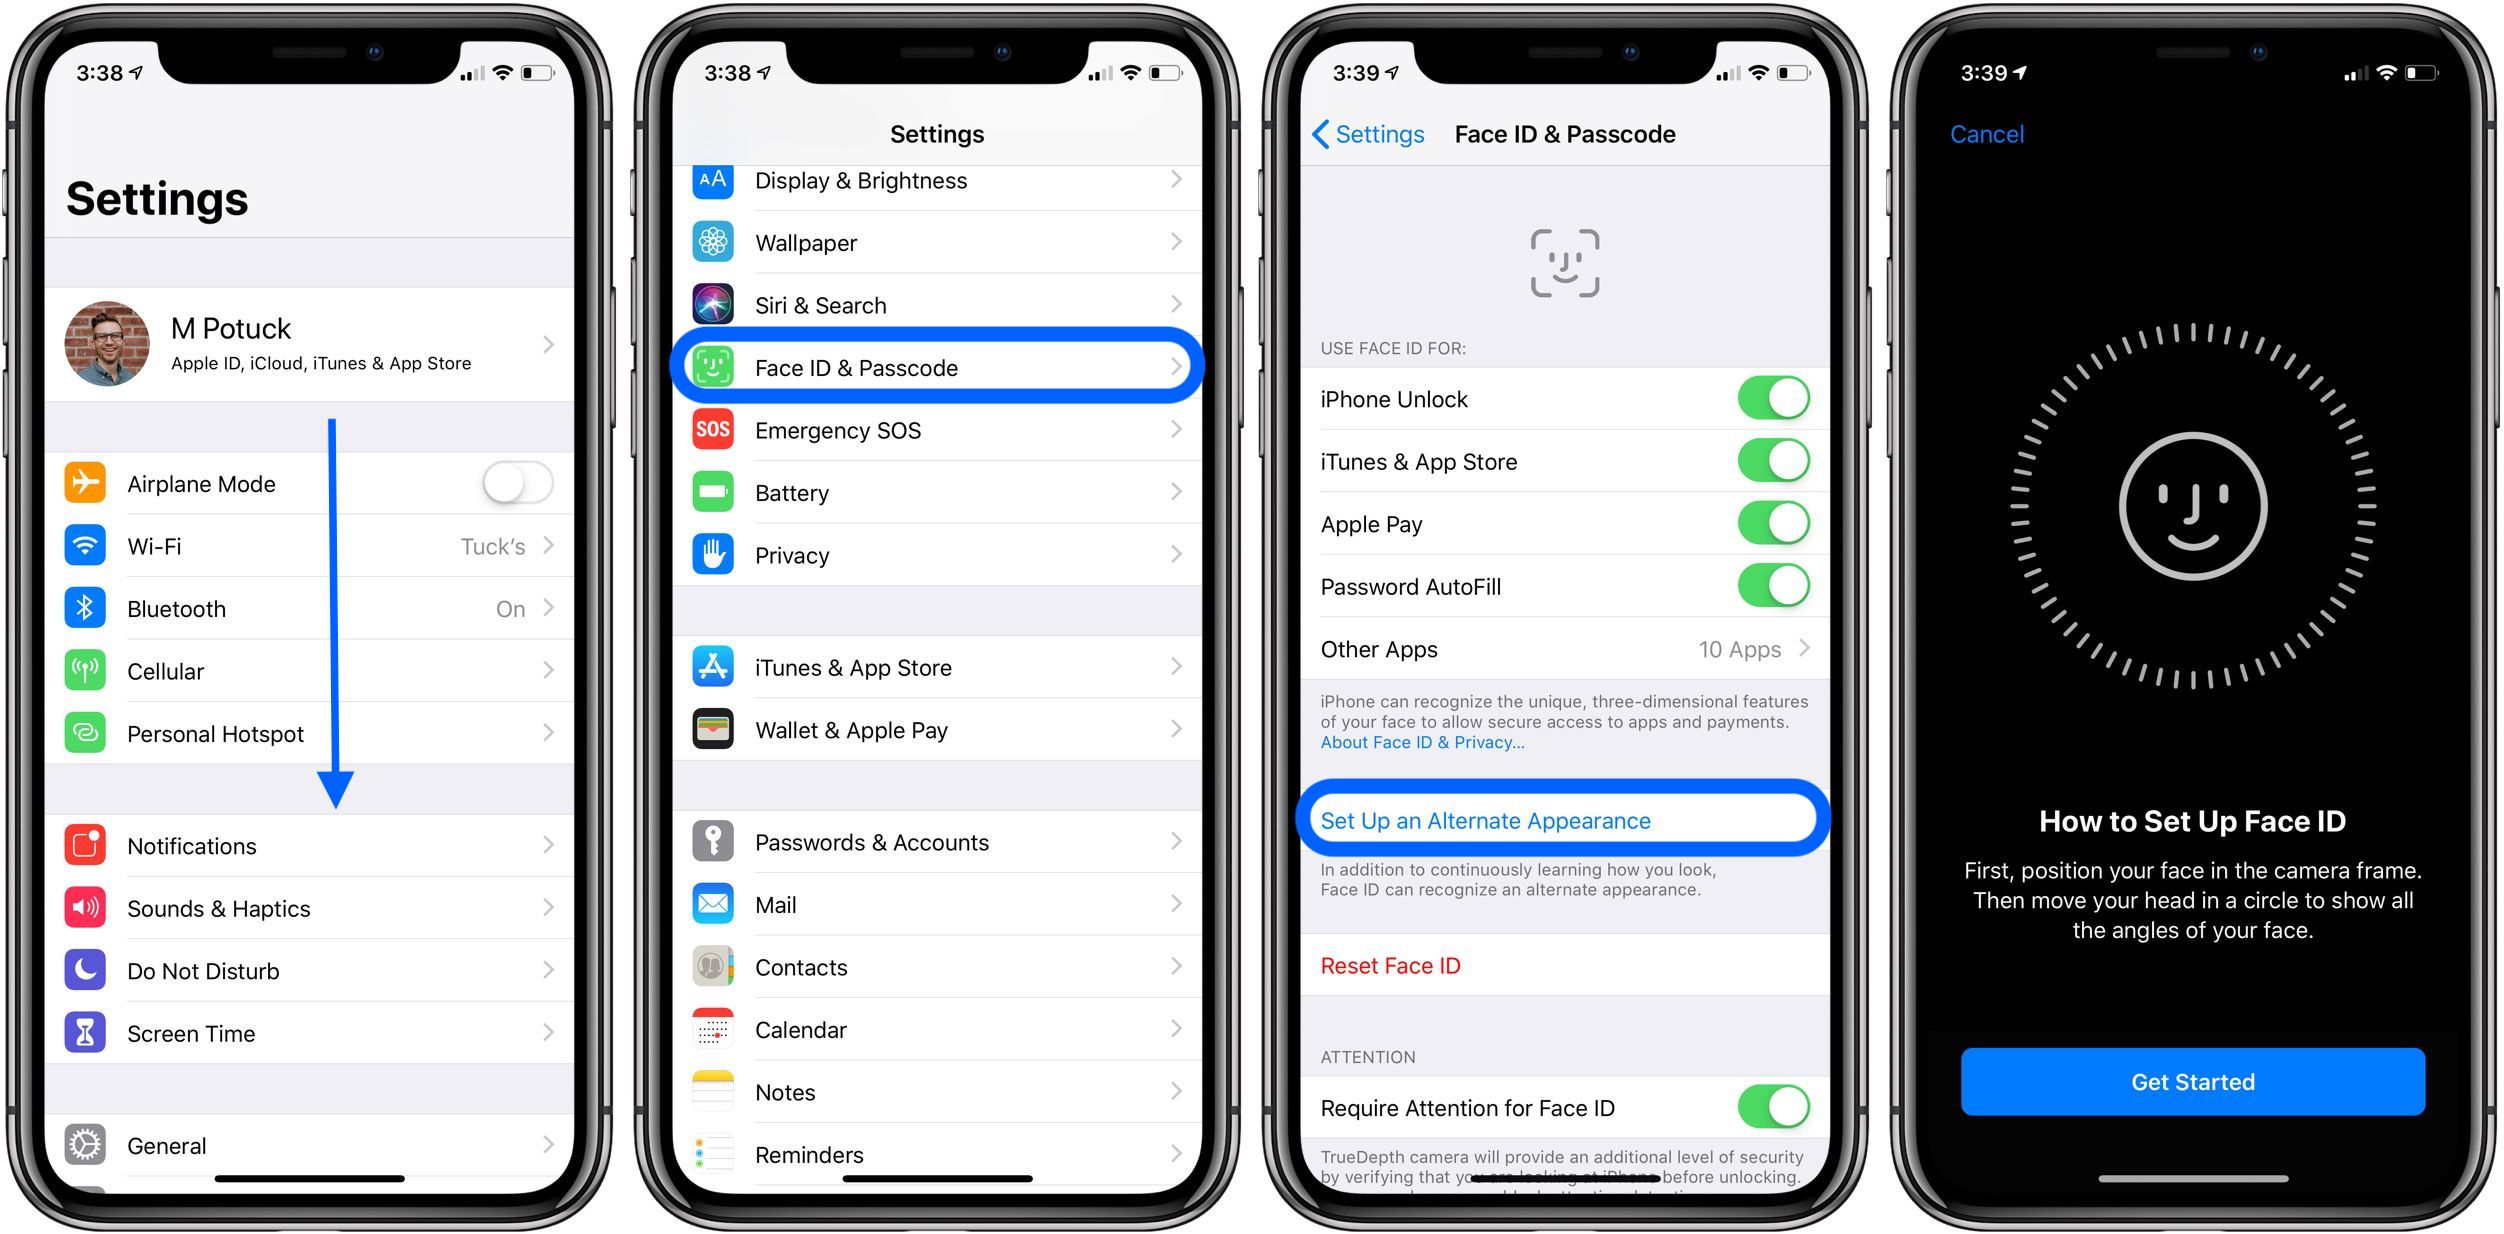 iOS 12: How to add a second person to Face ID on iPhone